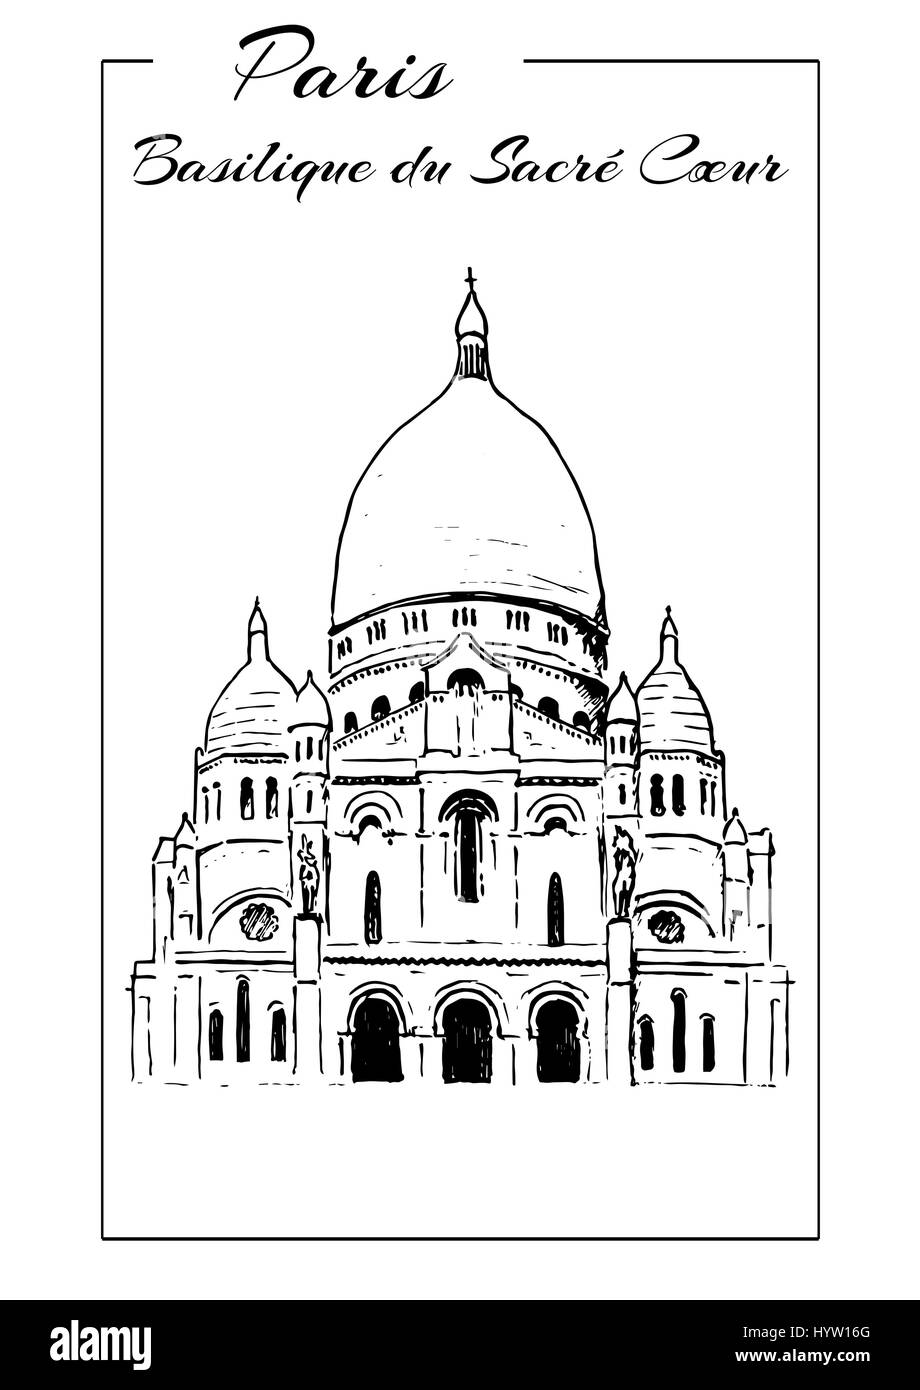 Basilica of Sacre Coeur, Montmartre. Paris symbol. The Basilica of the Sacred Heart. Hand drawing sketch vector - Stock Vector